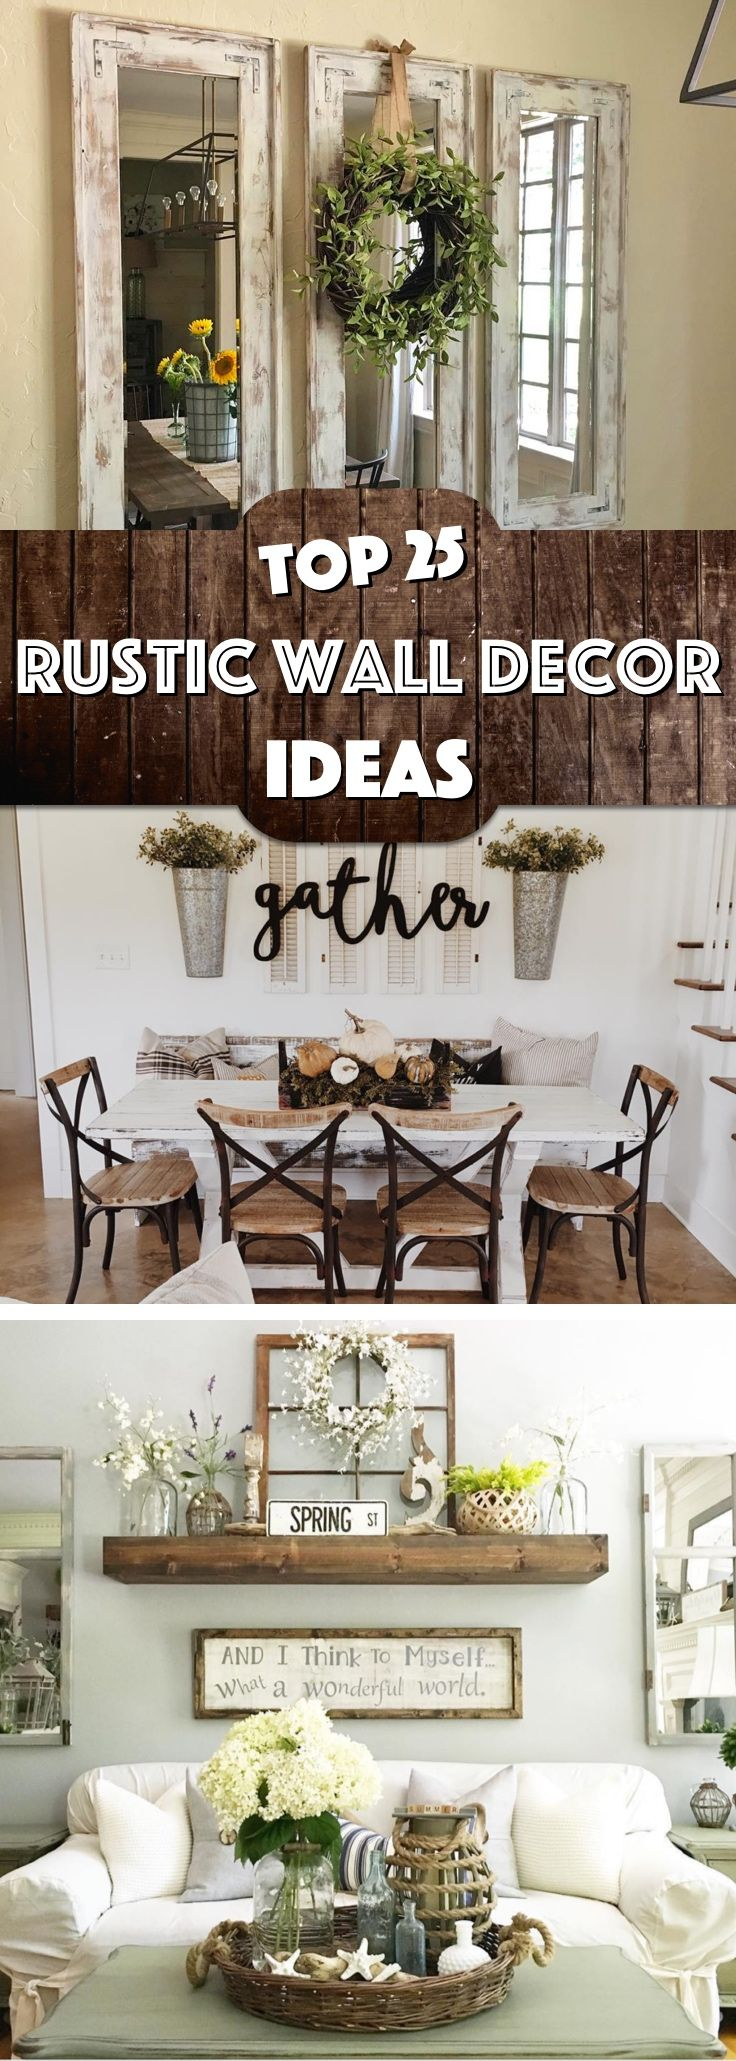 25 Must Try Rustic Wall Decor Ideas Featuring The Most Amazing Intended Imperfections Cute Diy Projects Easy Home Decor Farm House Living Room Home Decor